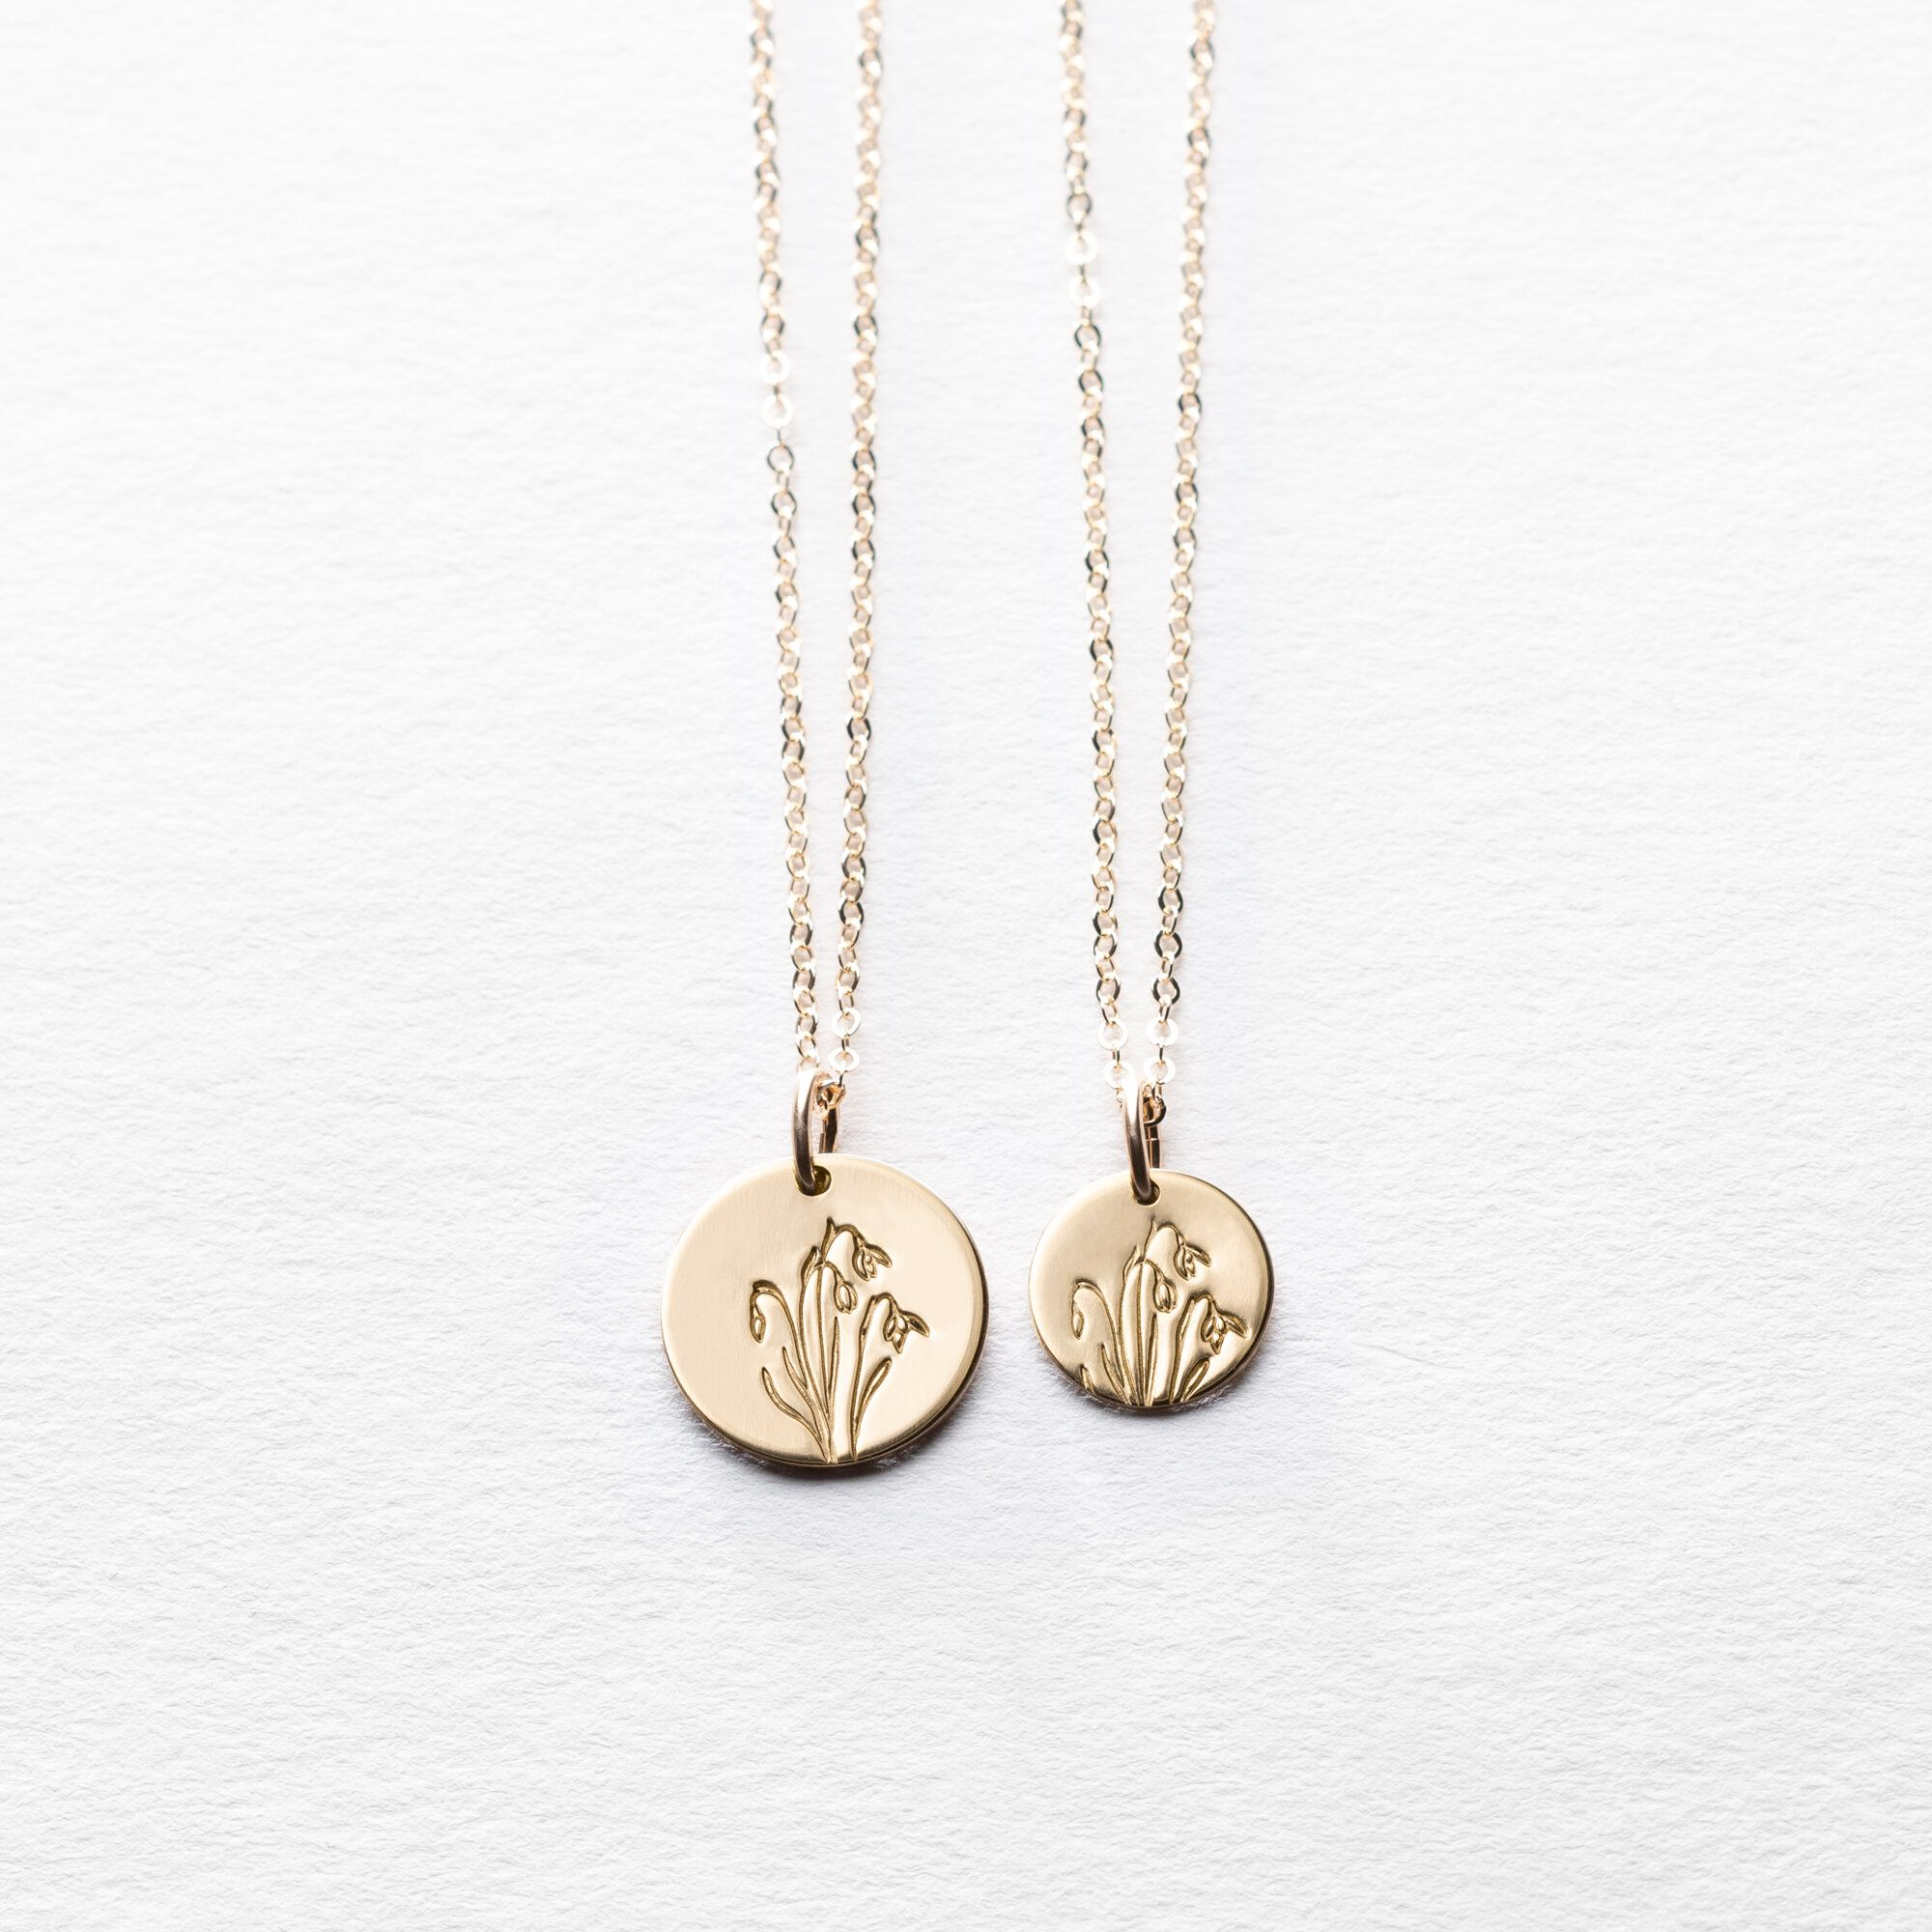 Snowdrop Flower Necklace In 2020 Coin Necklace Necklace Lavender Jewellery